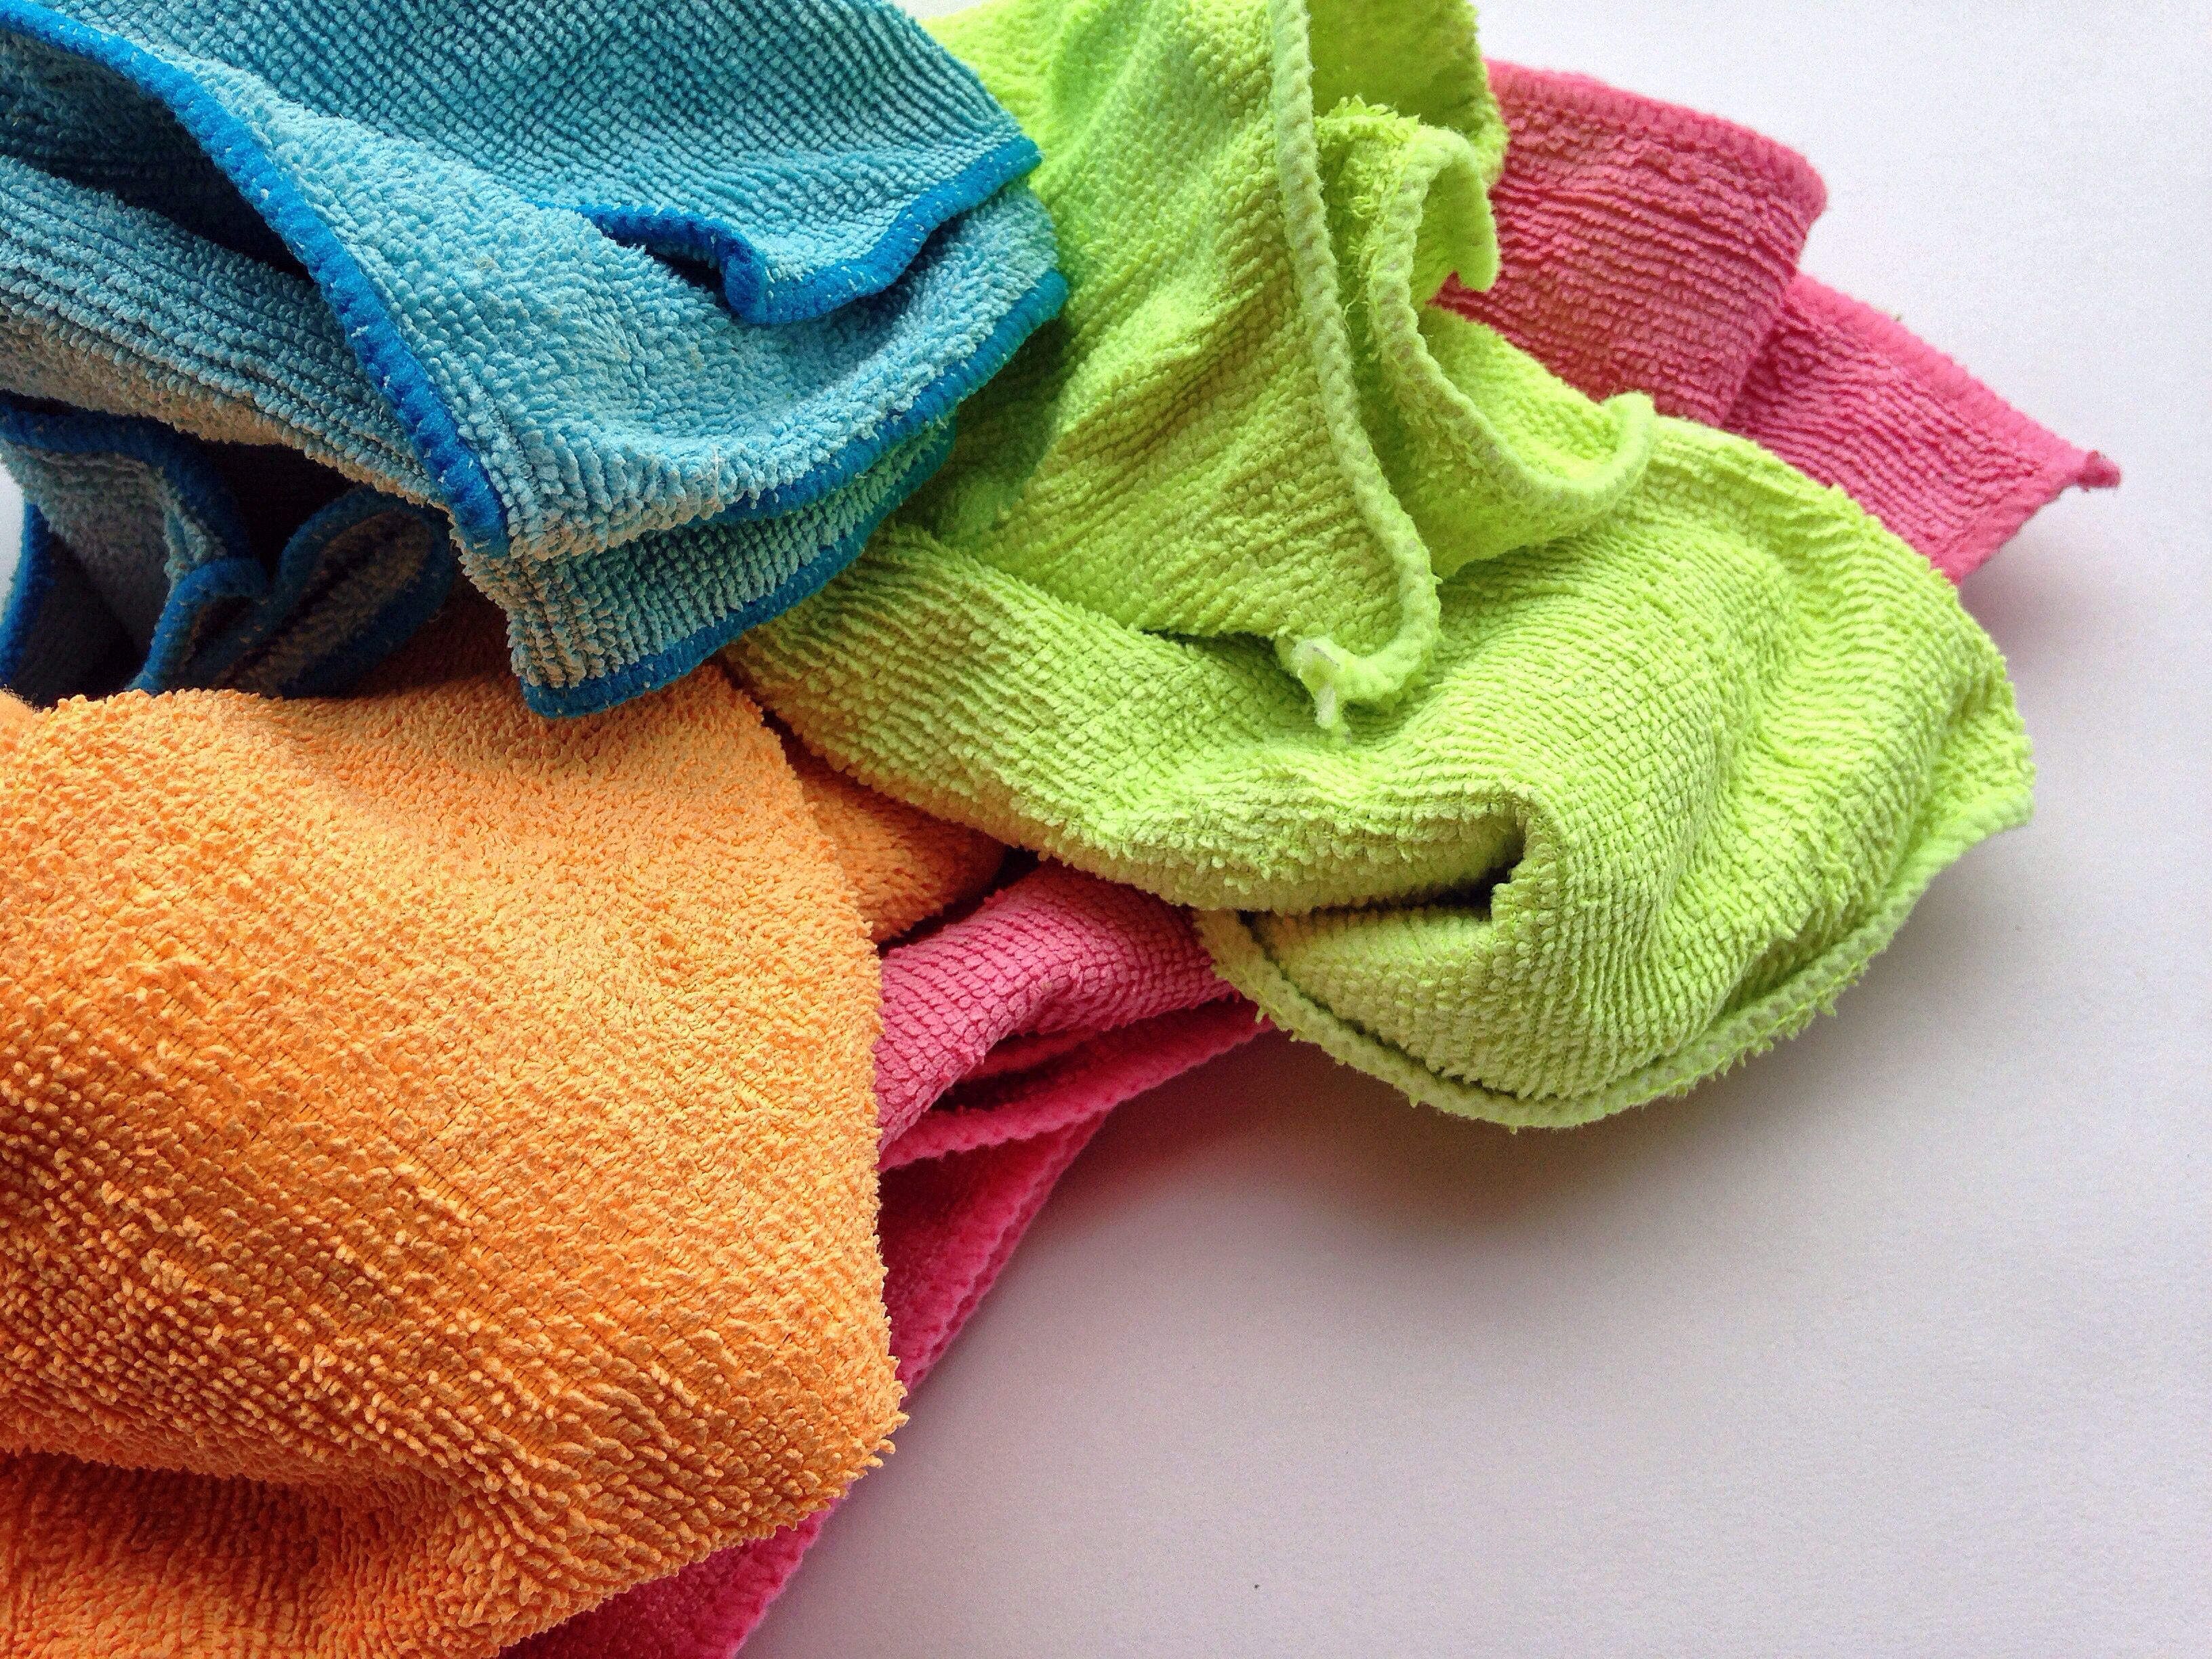 sola makers cleaning cloths - HD3264×2448